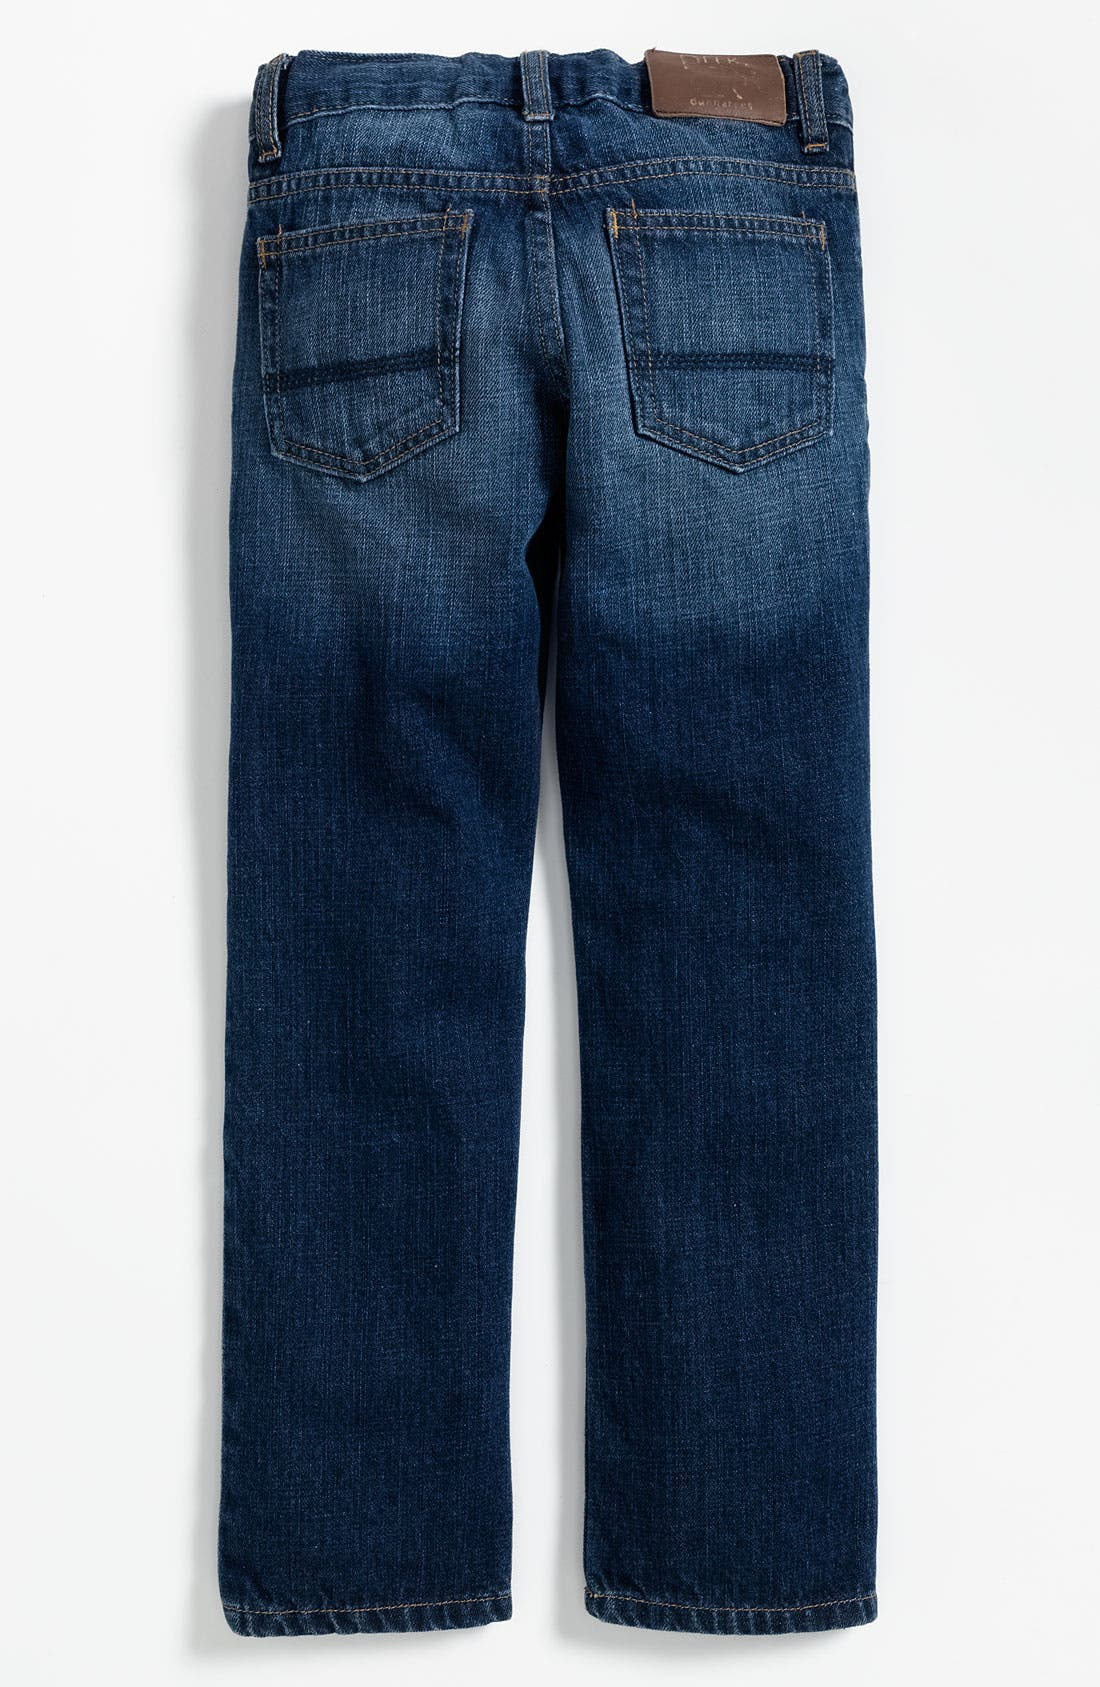 Main Image - Peek 'Ellis' Jeans (Toddler, Little Boys & Big Boys)